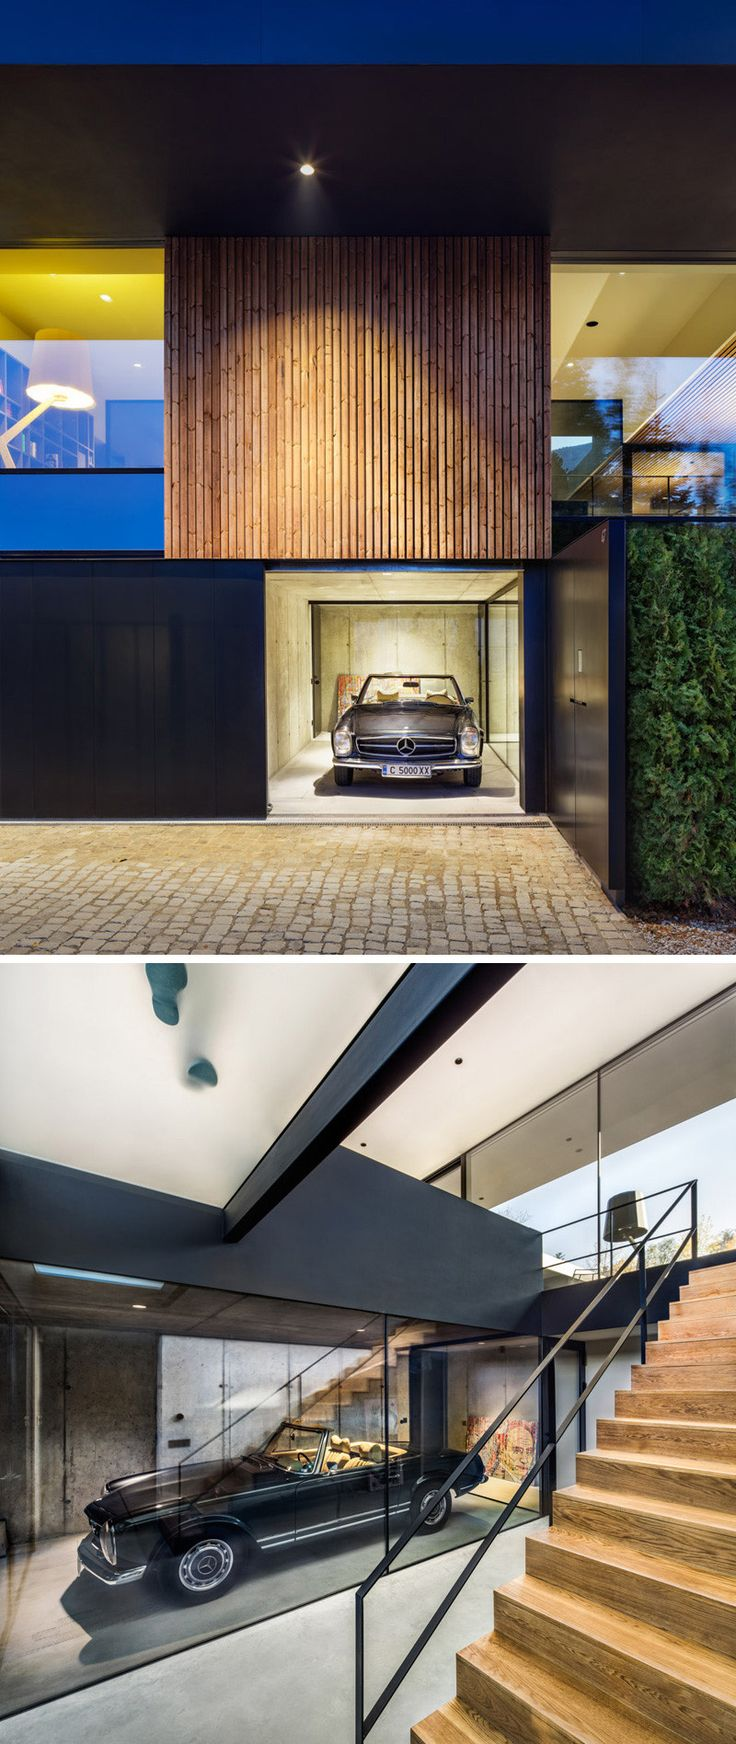 best 20 car garage ideas on pinterest car man cave garage and at the side of this home is a single car garage the garage is garage planscar garagegarage ideasgarage designhome